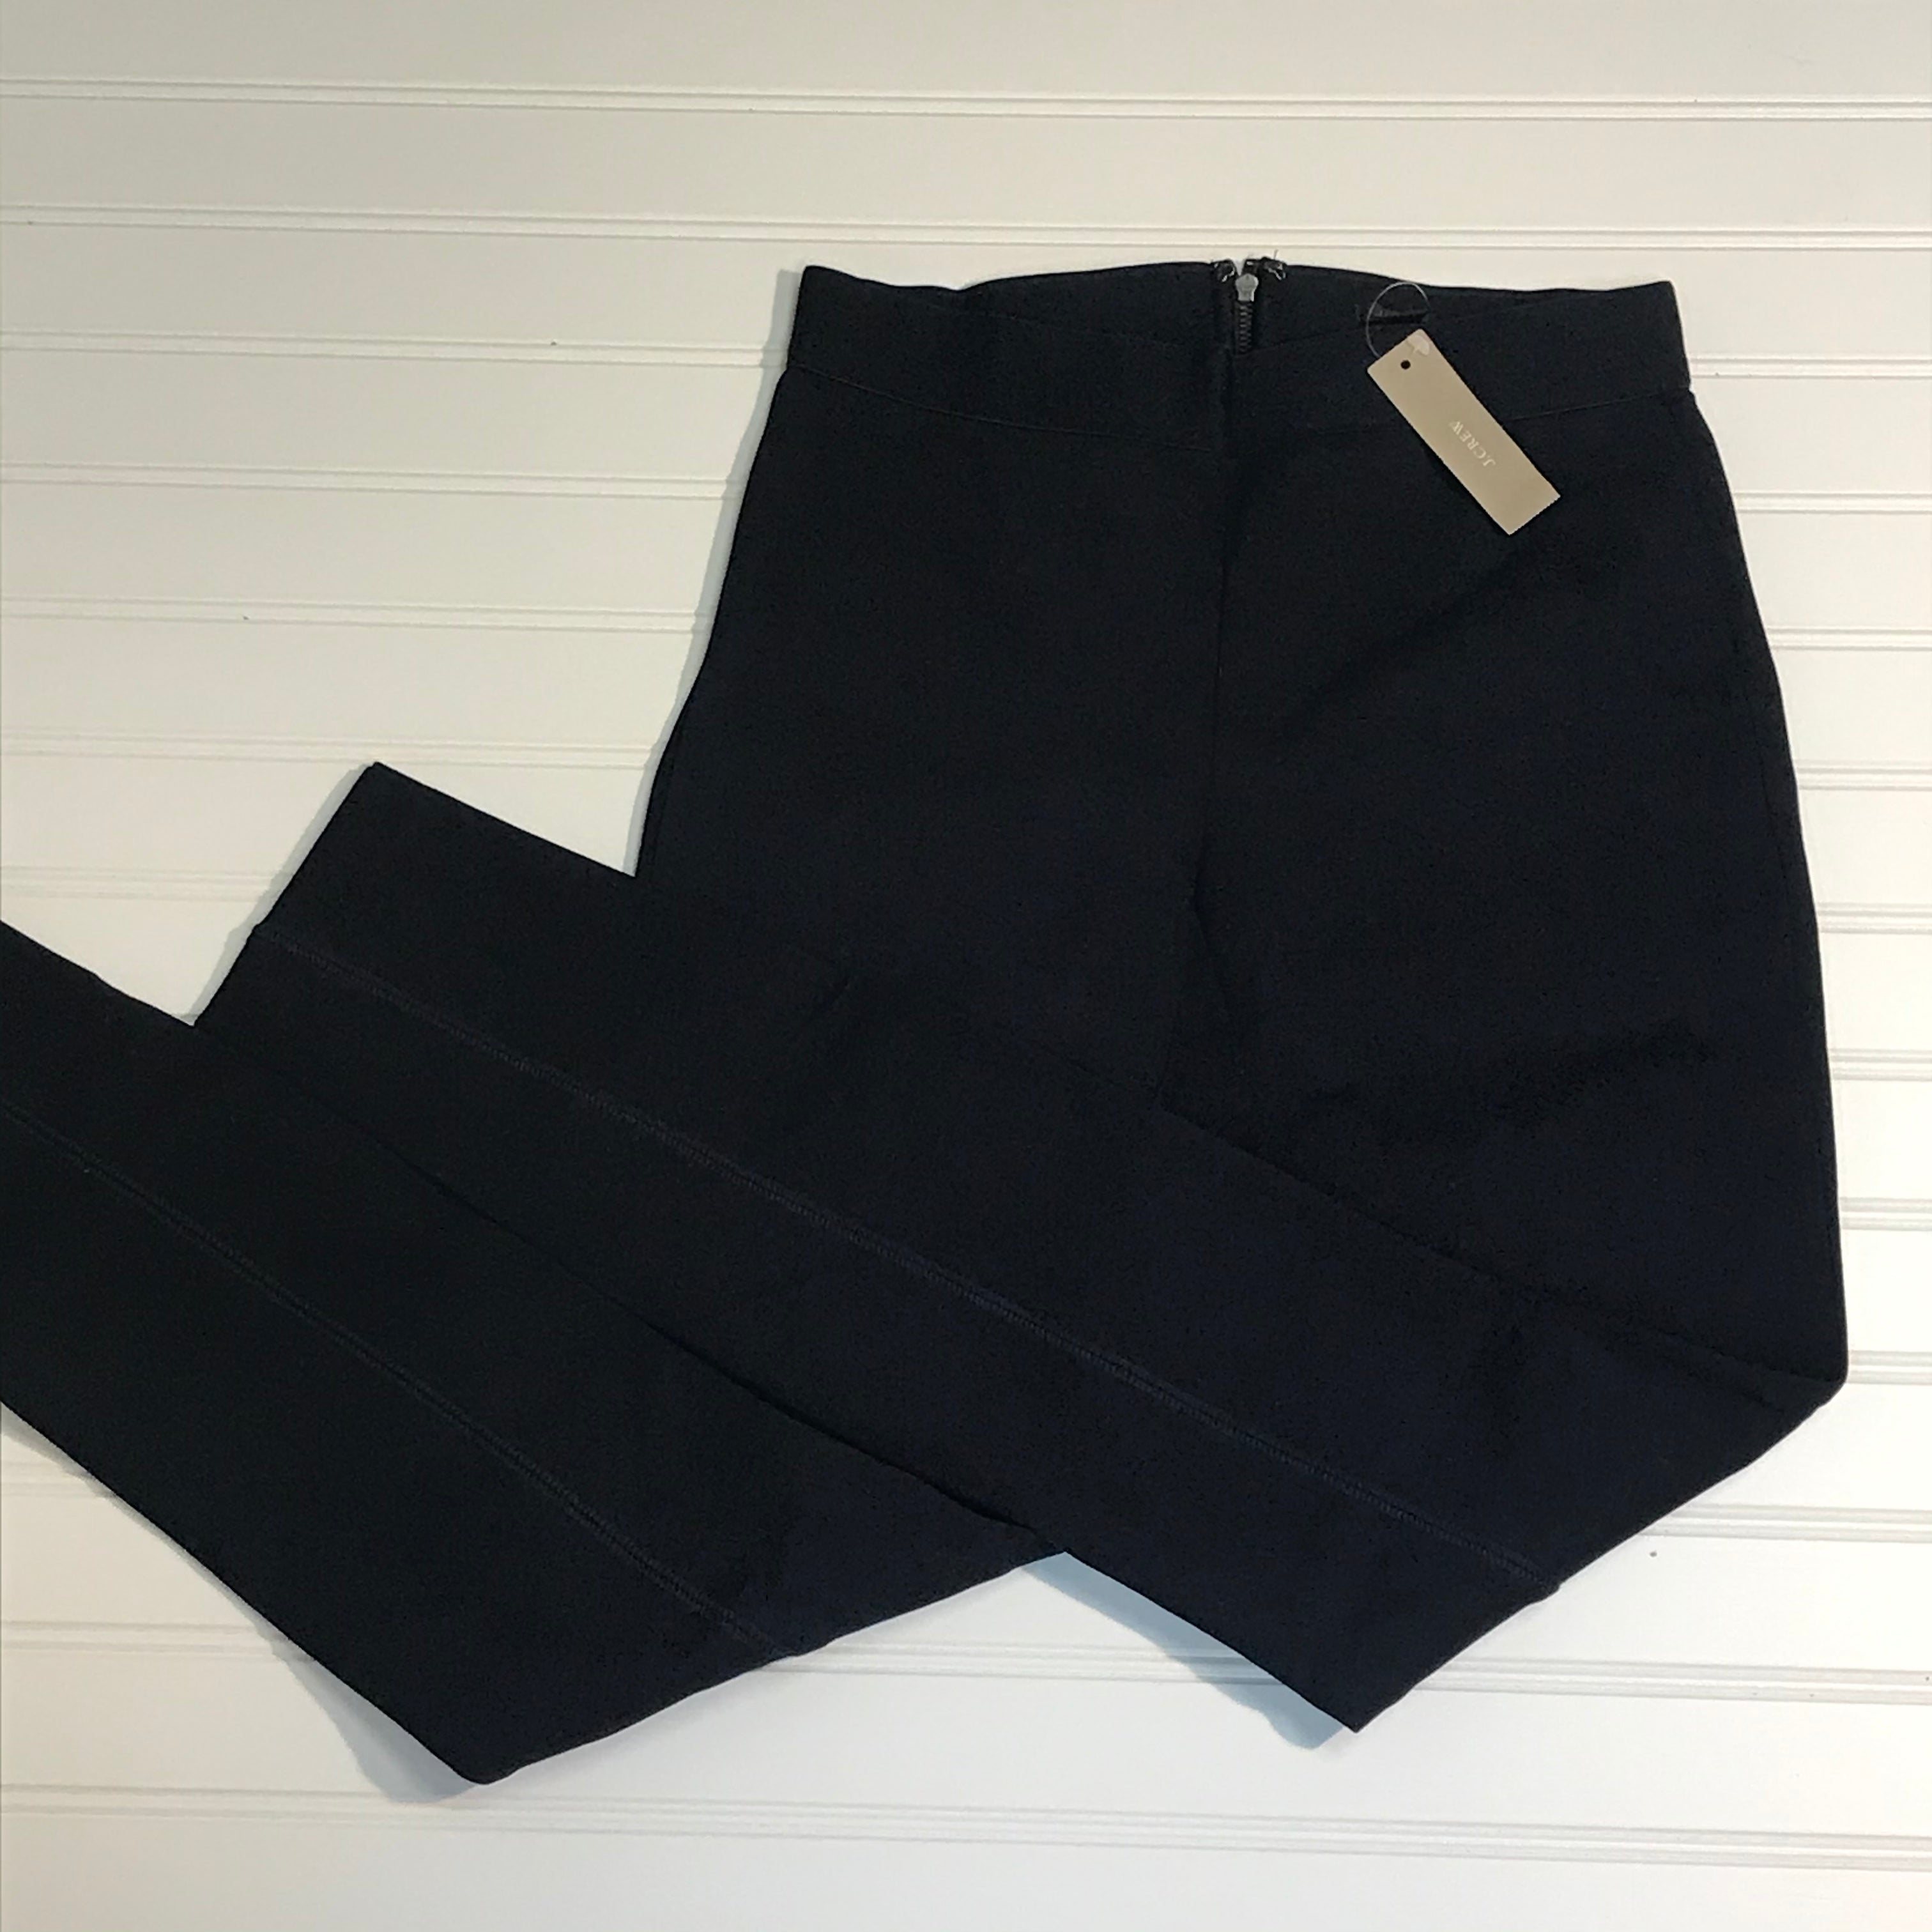 Primary Photo - BRAND: J CREW <BR>STYLE: LEGGINGS <BR>COLOR: NAVY <BR>SIZE: 0 <BR>OTHER INFO: NEW! <BR>SKU: 239-23911-66930